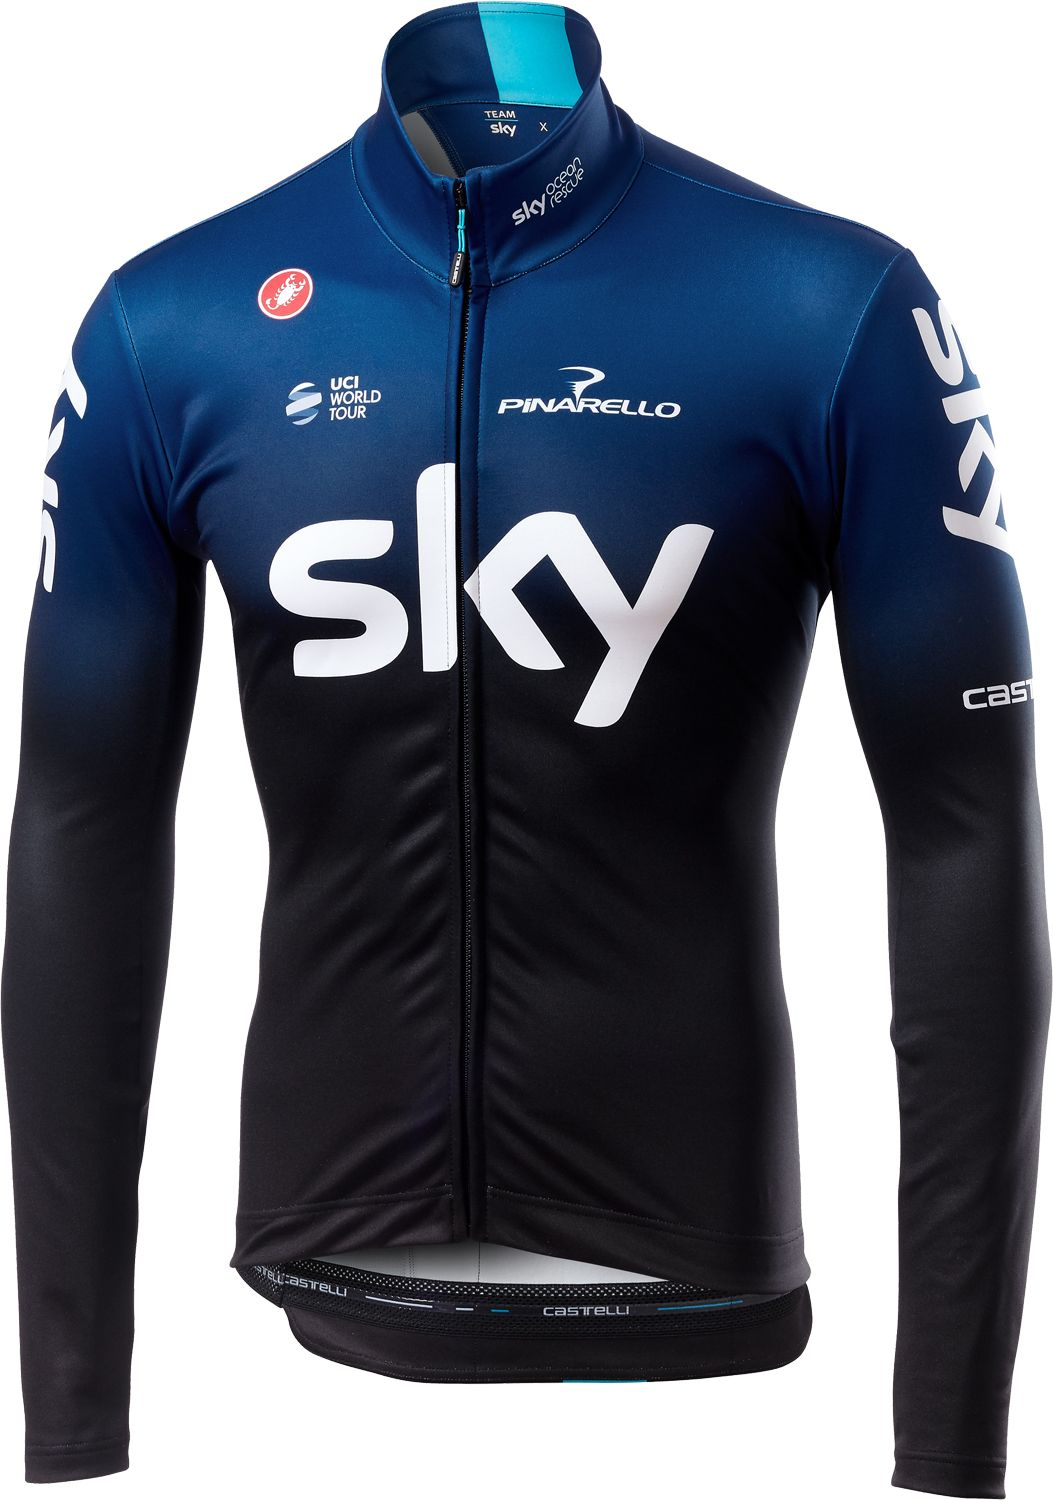 CASTELLI TEAM SKY 2019 long sleeve cycling jersey - professional cycling  team 2564d5dc7